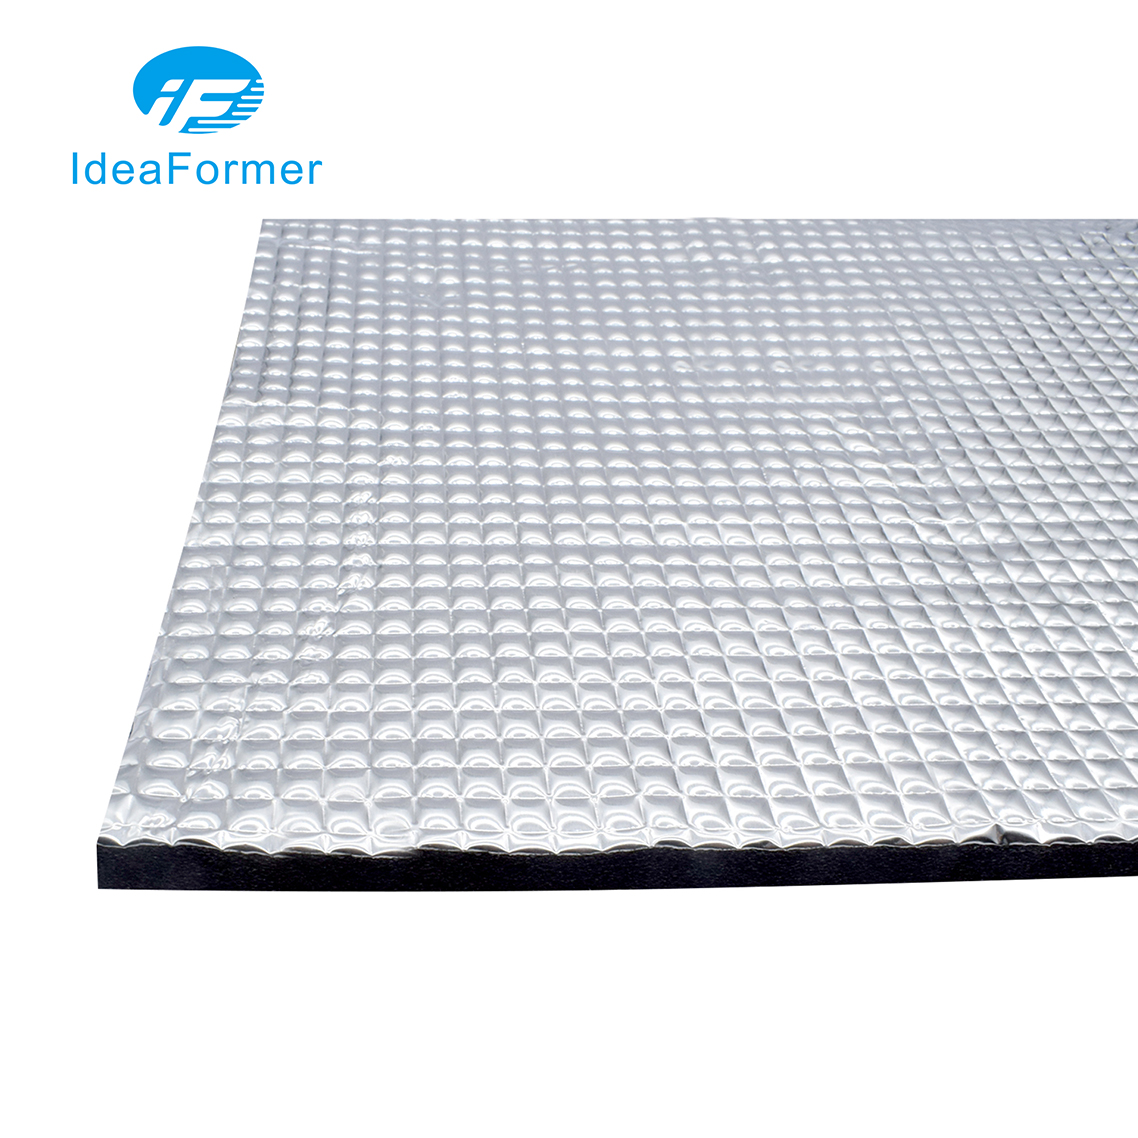 3D printer parts Heated <font><b>bed</b></font> Thermal Insulation cotton 200/<font><b>220</b></font>/300mm <font><b>Heat</b></font> Insulation Mat for 3D Printer Heating <font><b>Bed</b></font> Sticker image